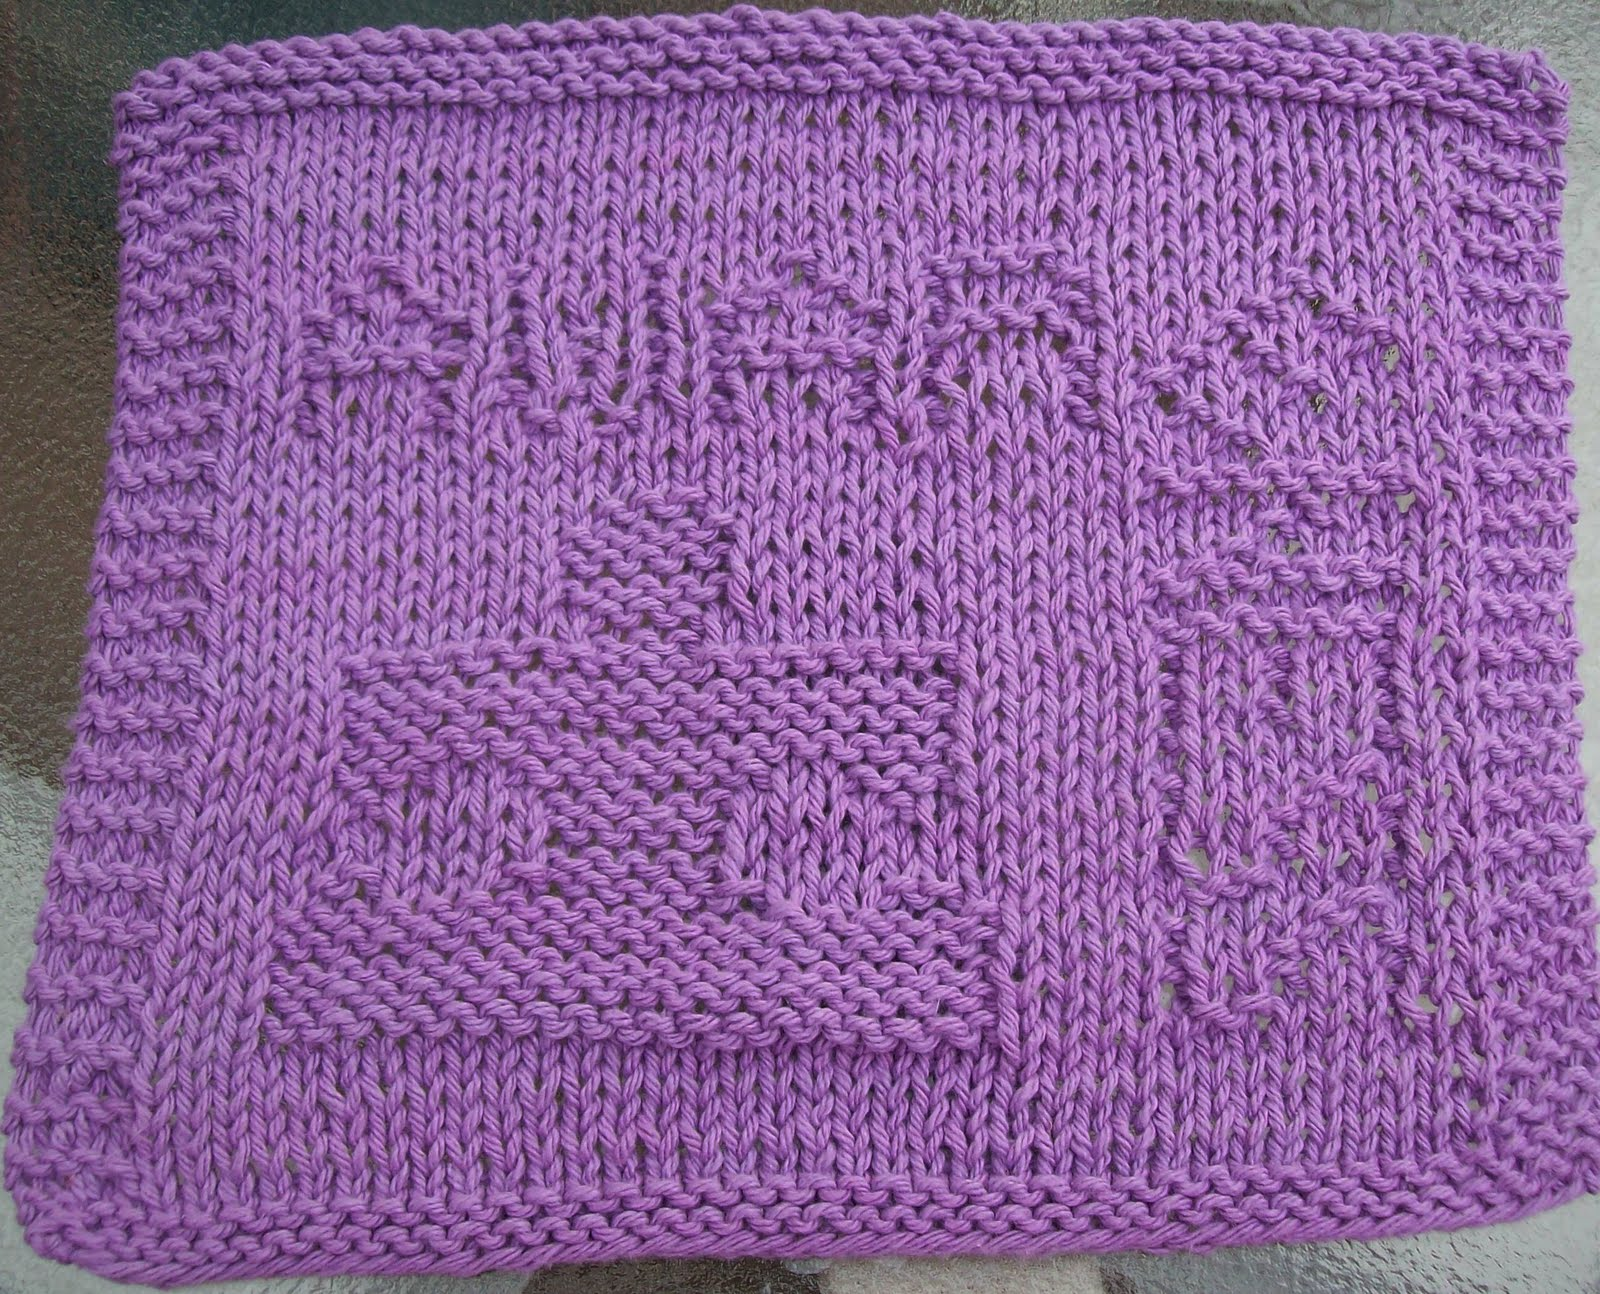 DigKnitty Designs: Autism Awareness * Free* Knit Dishcloth Pattern